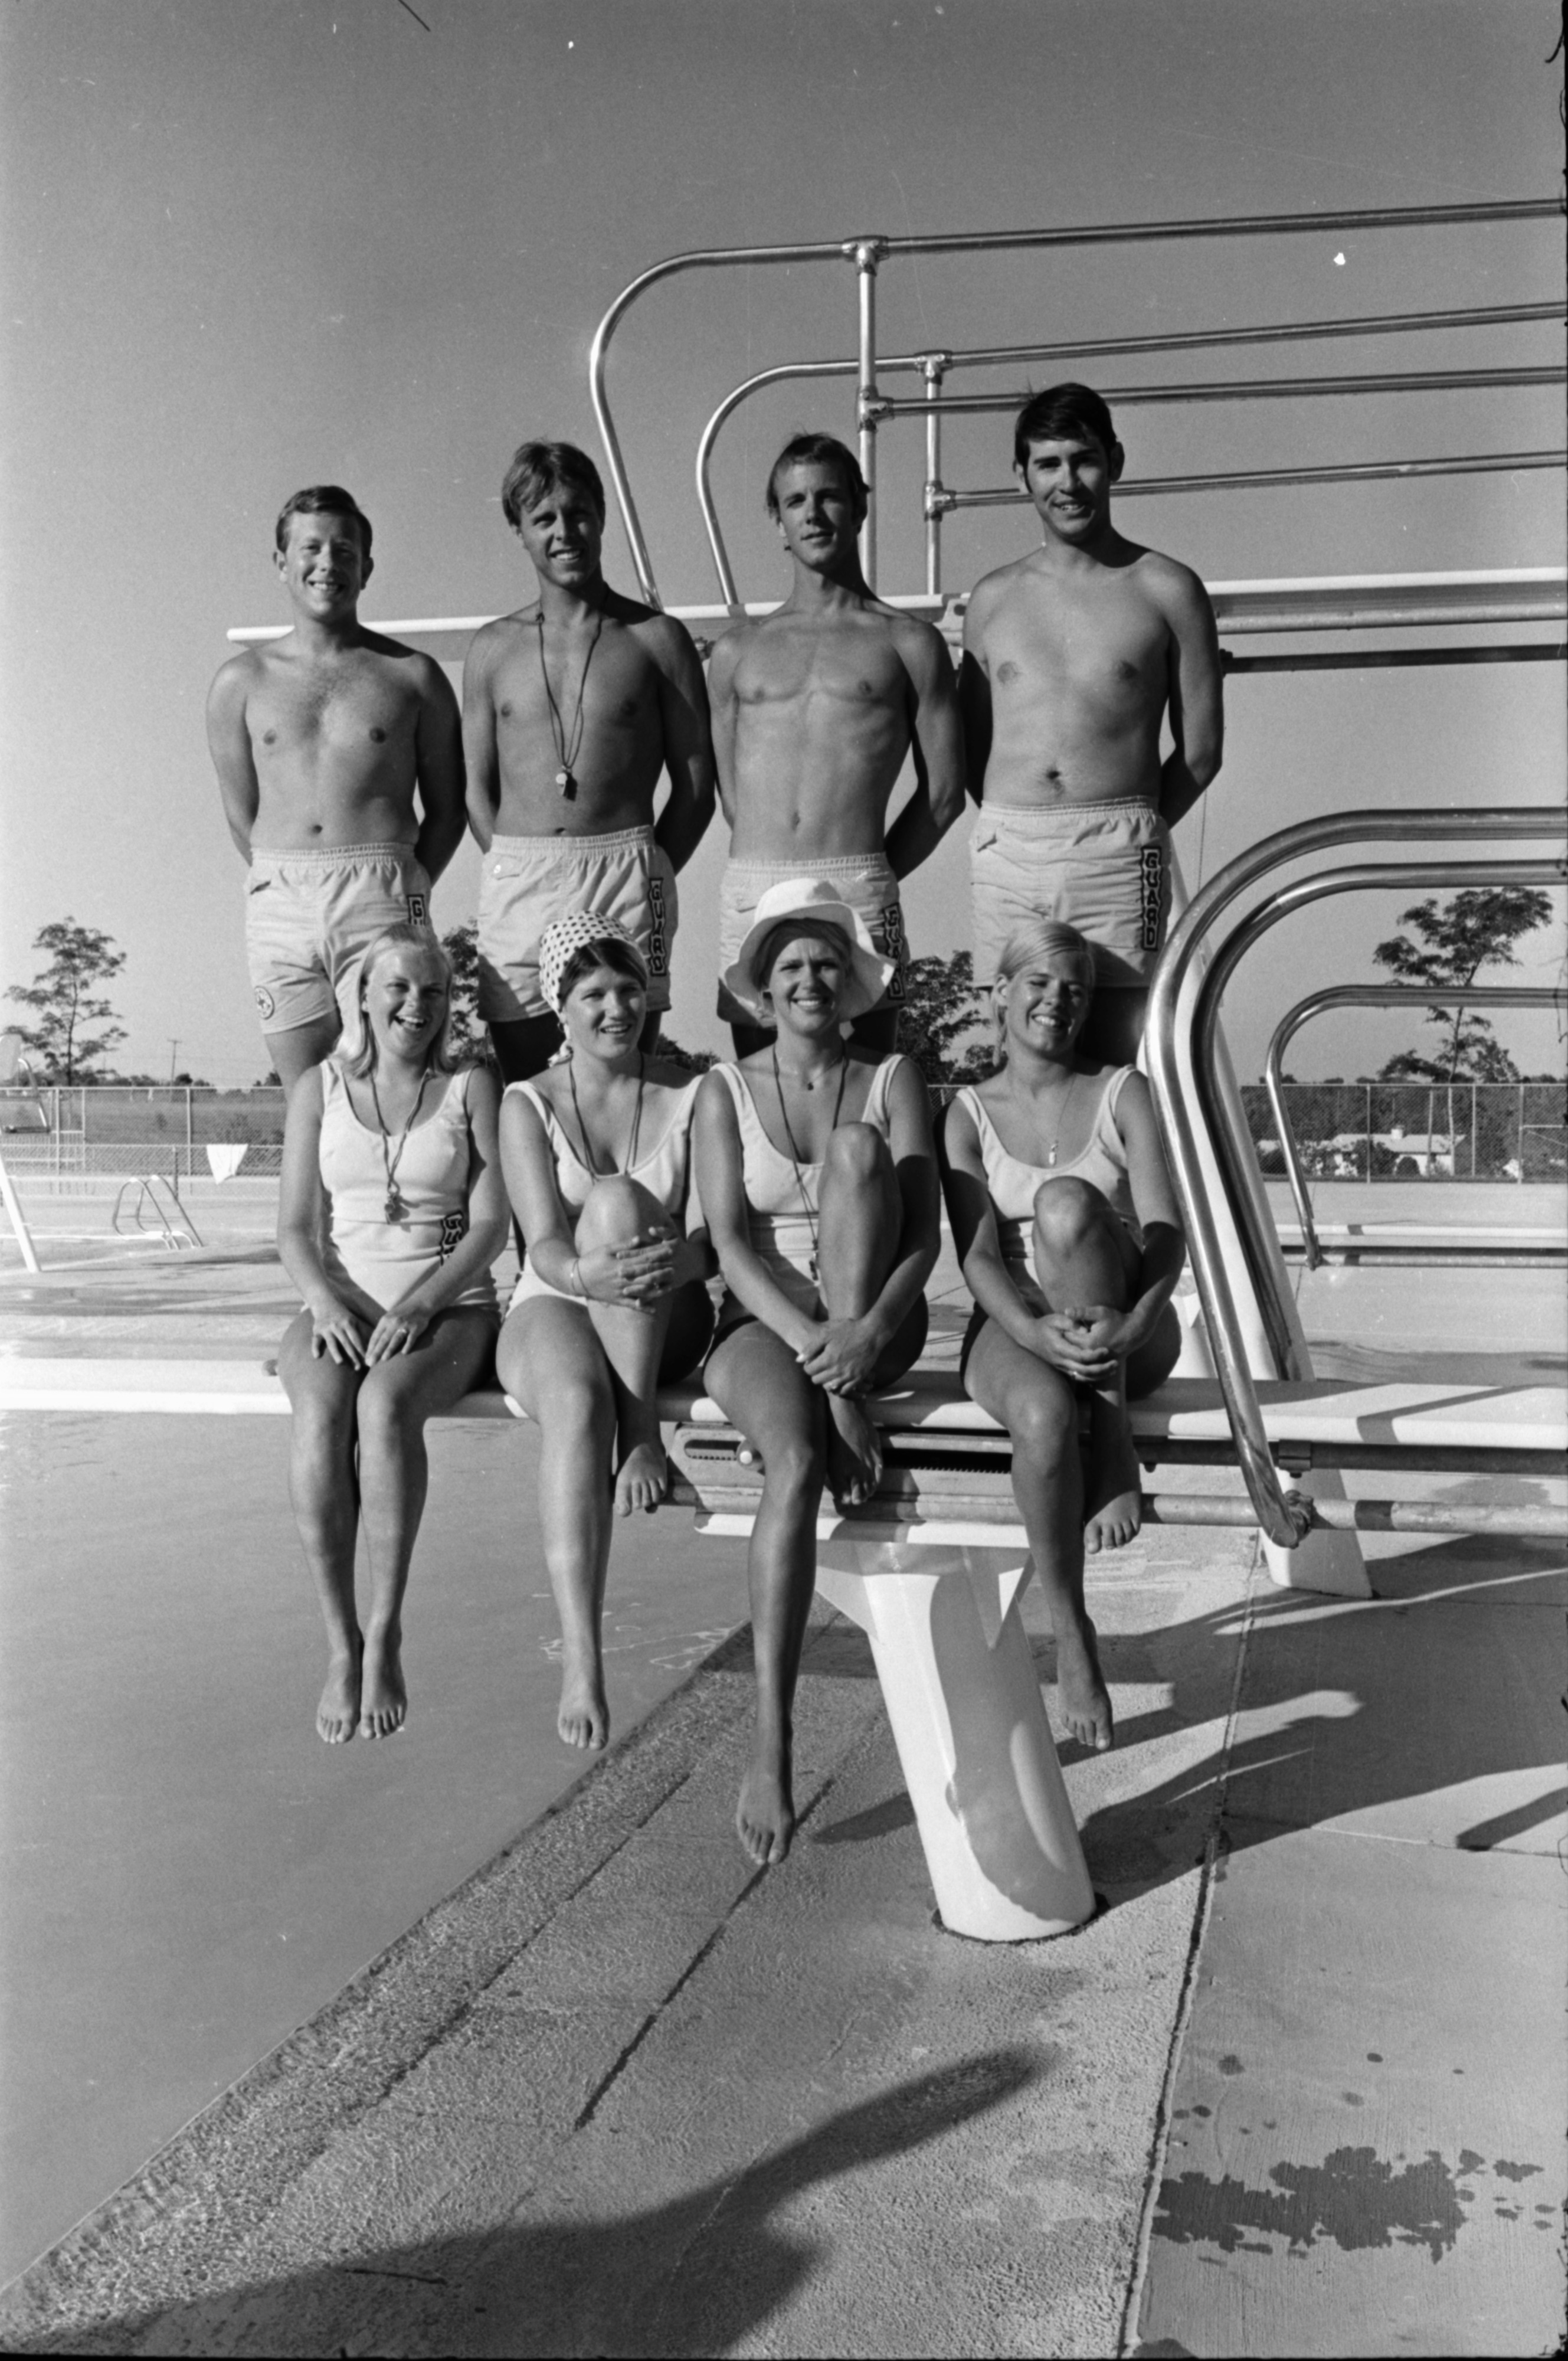 Swimmers at Buhr Pool, June 1969 image